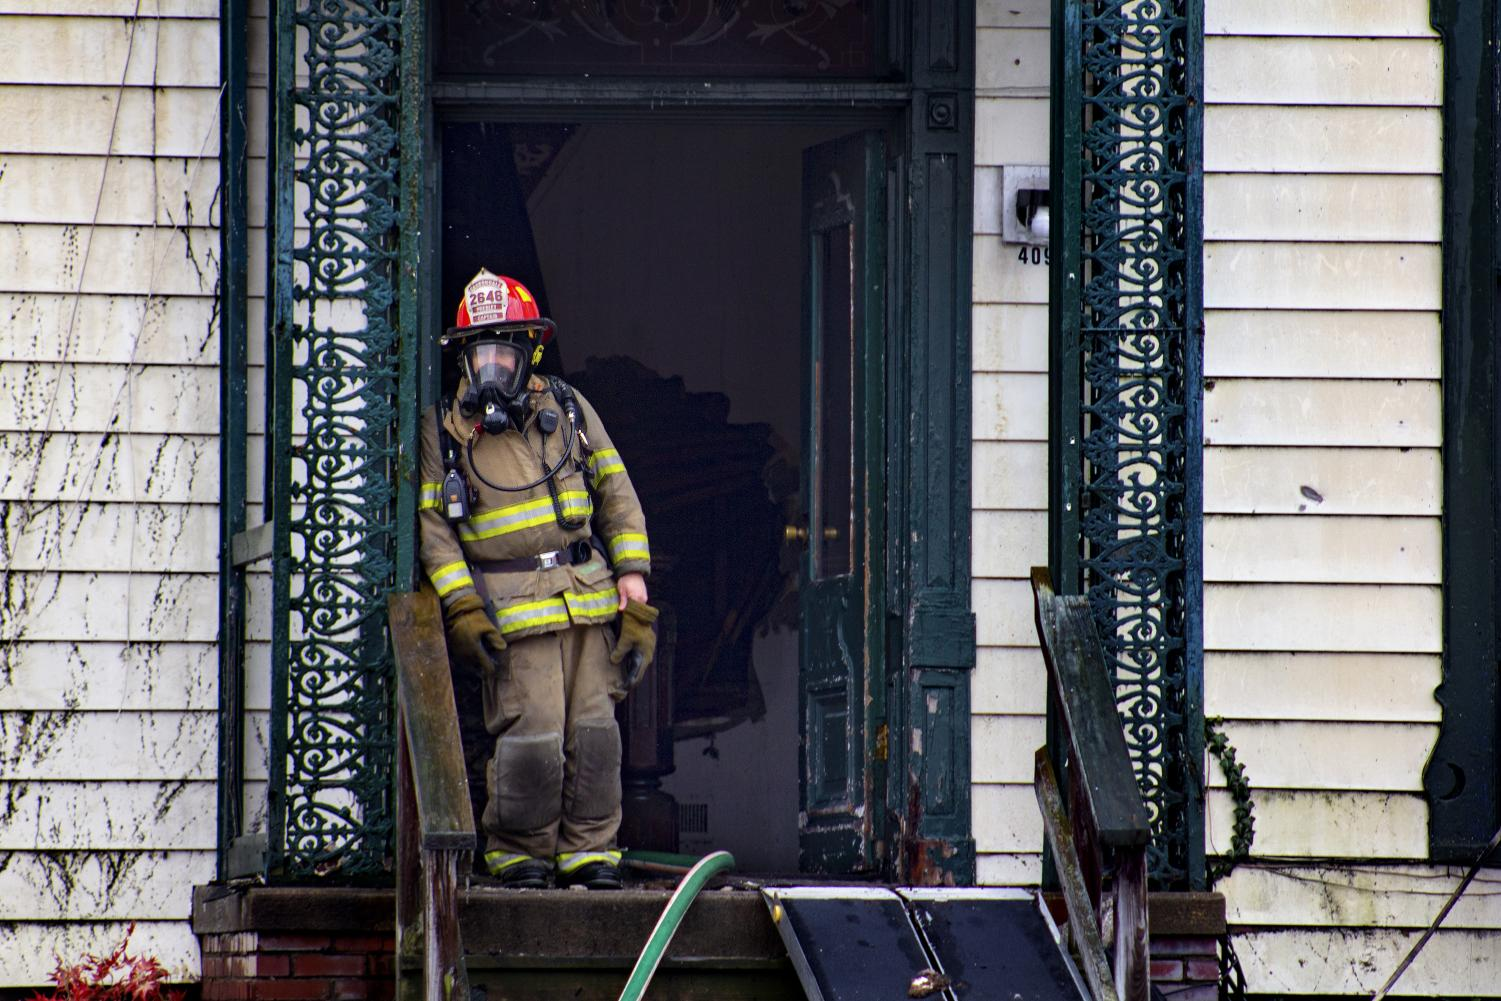 Carbondale building built in 1881 destroyed in fire – Daily